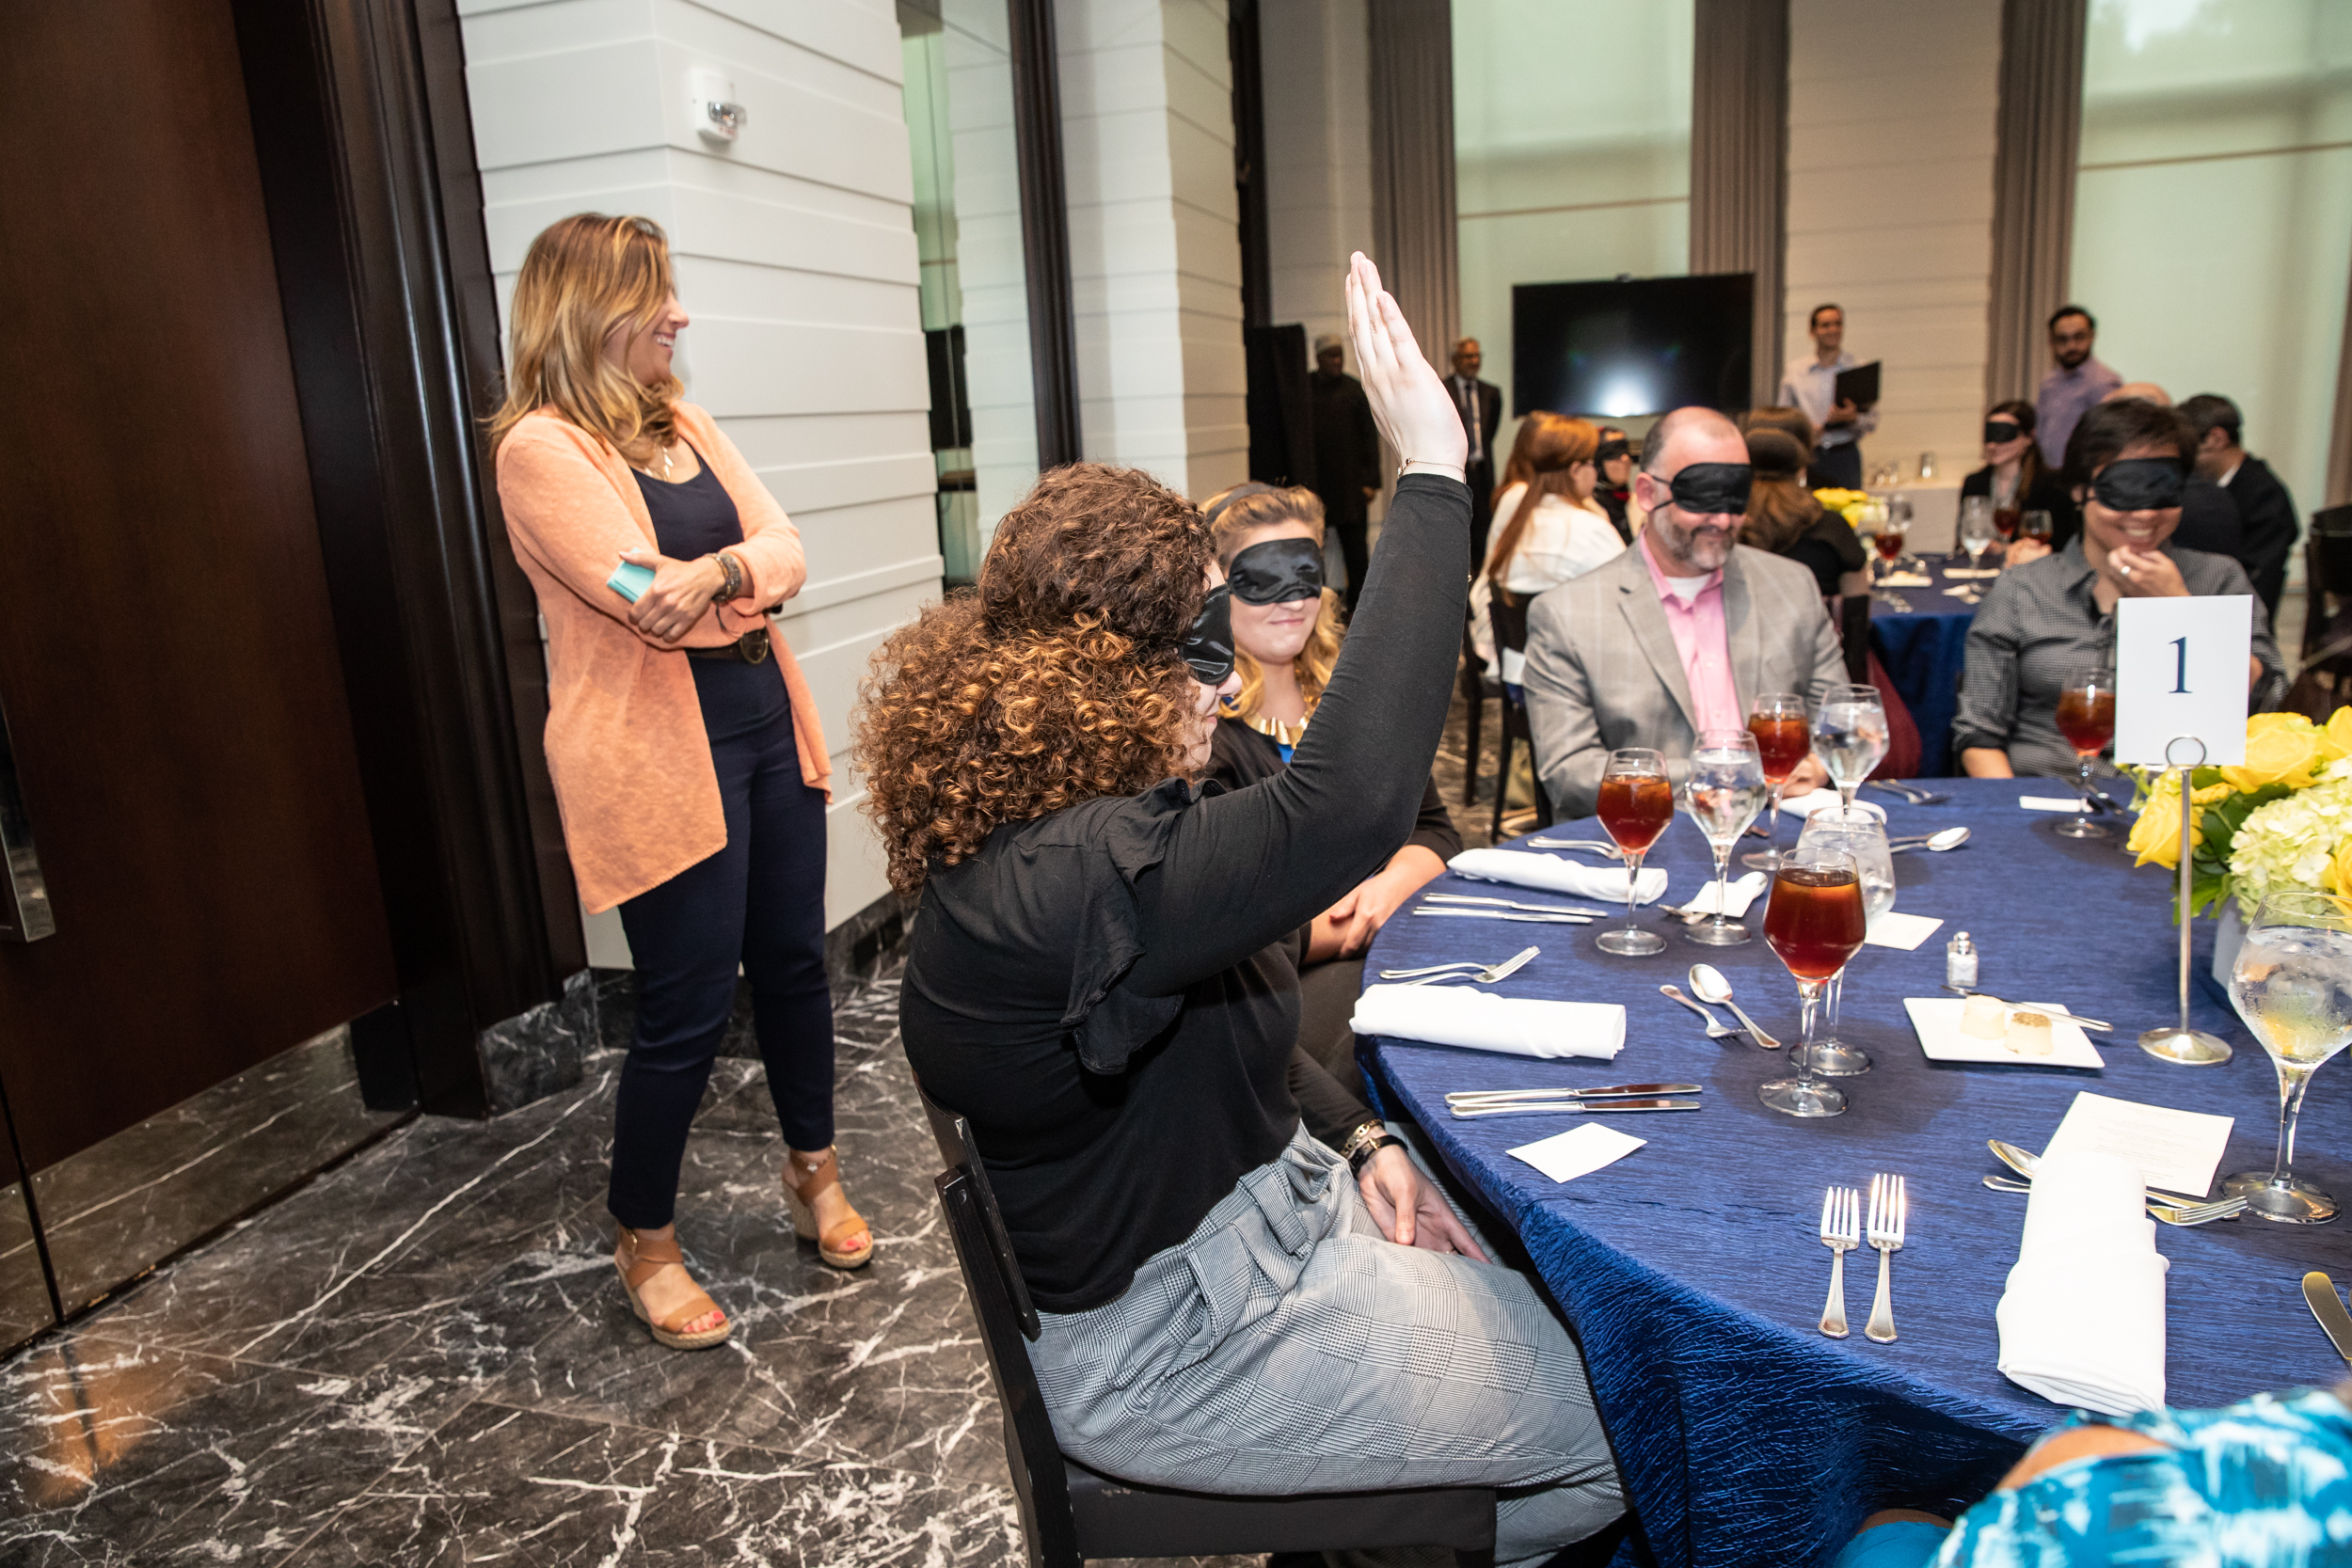 A blindfolded participant raises her hand to share with the room her favorite part of event.